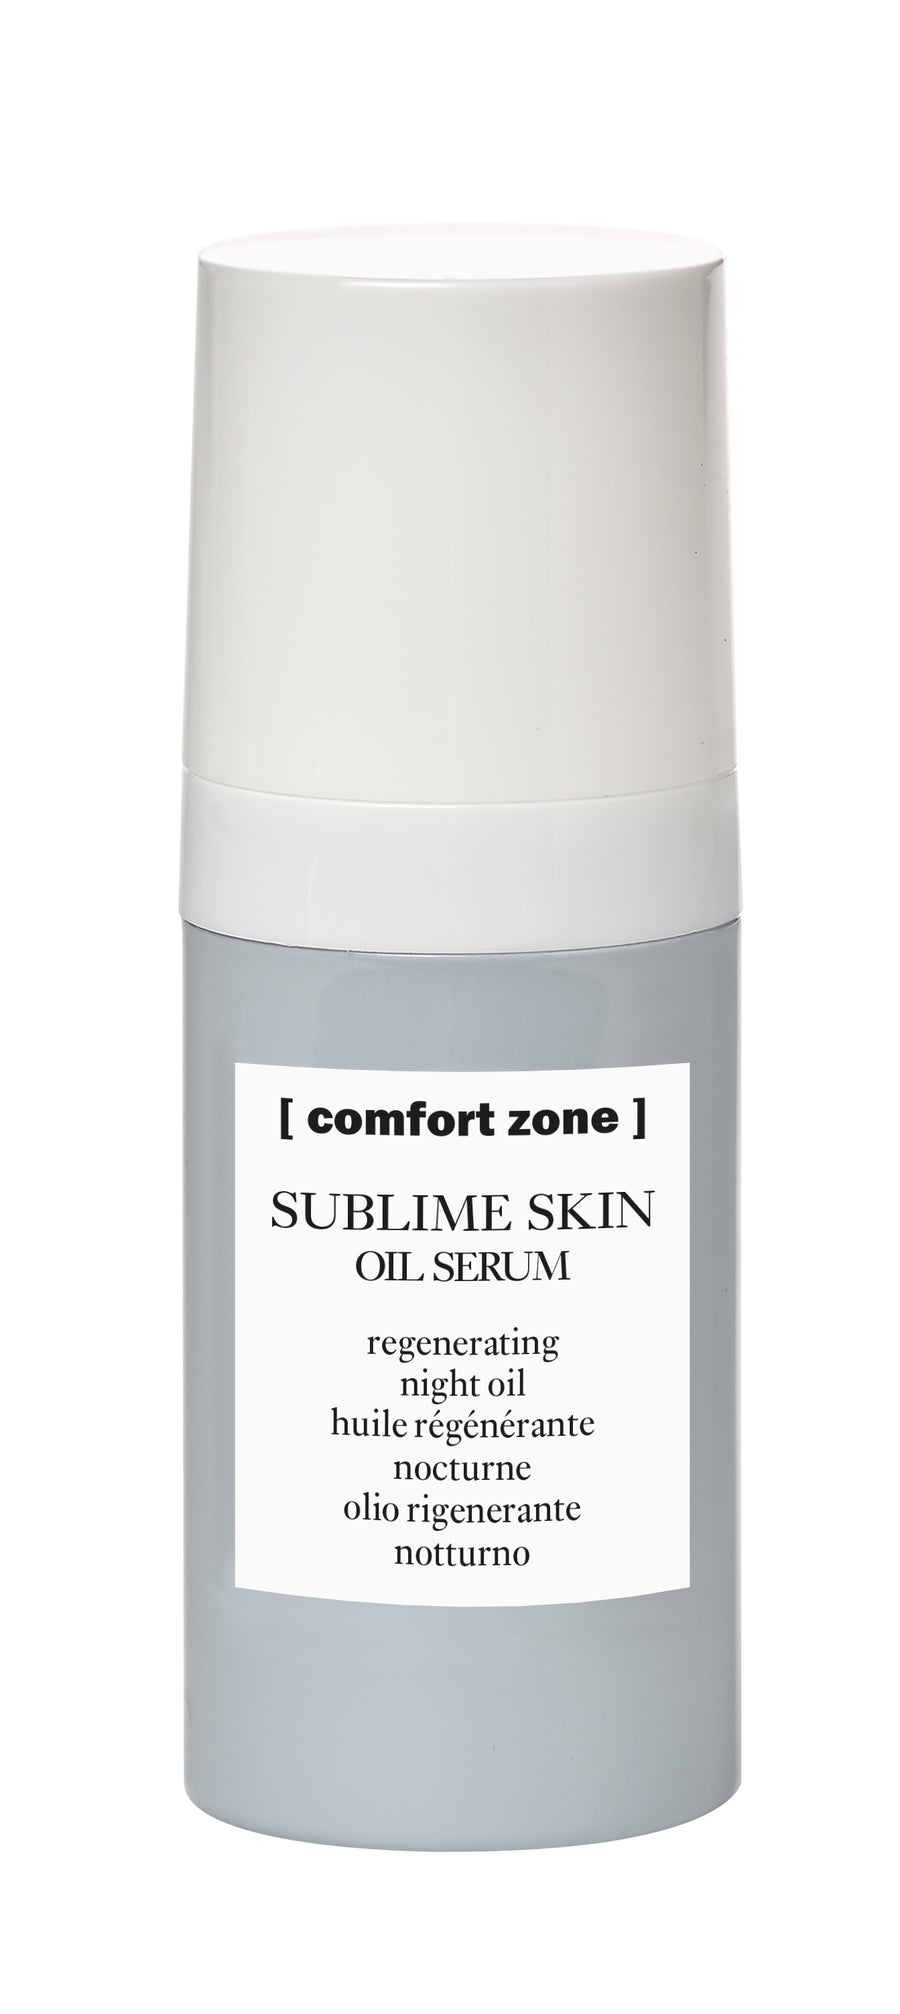 Sublime skin oil serum 30ml